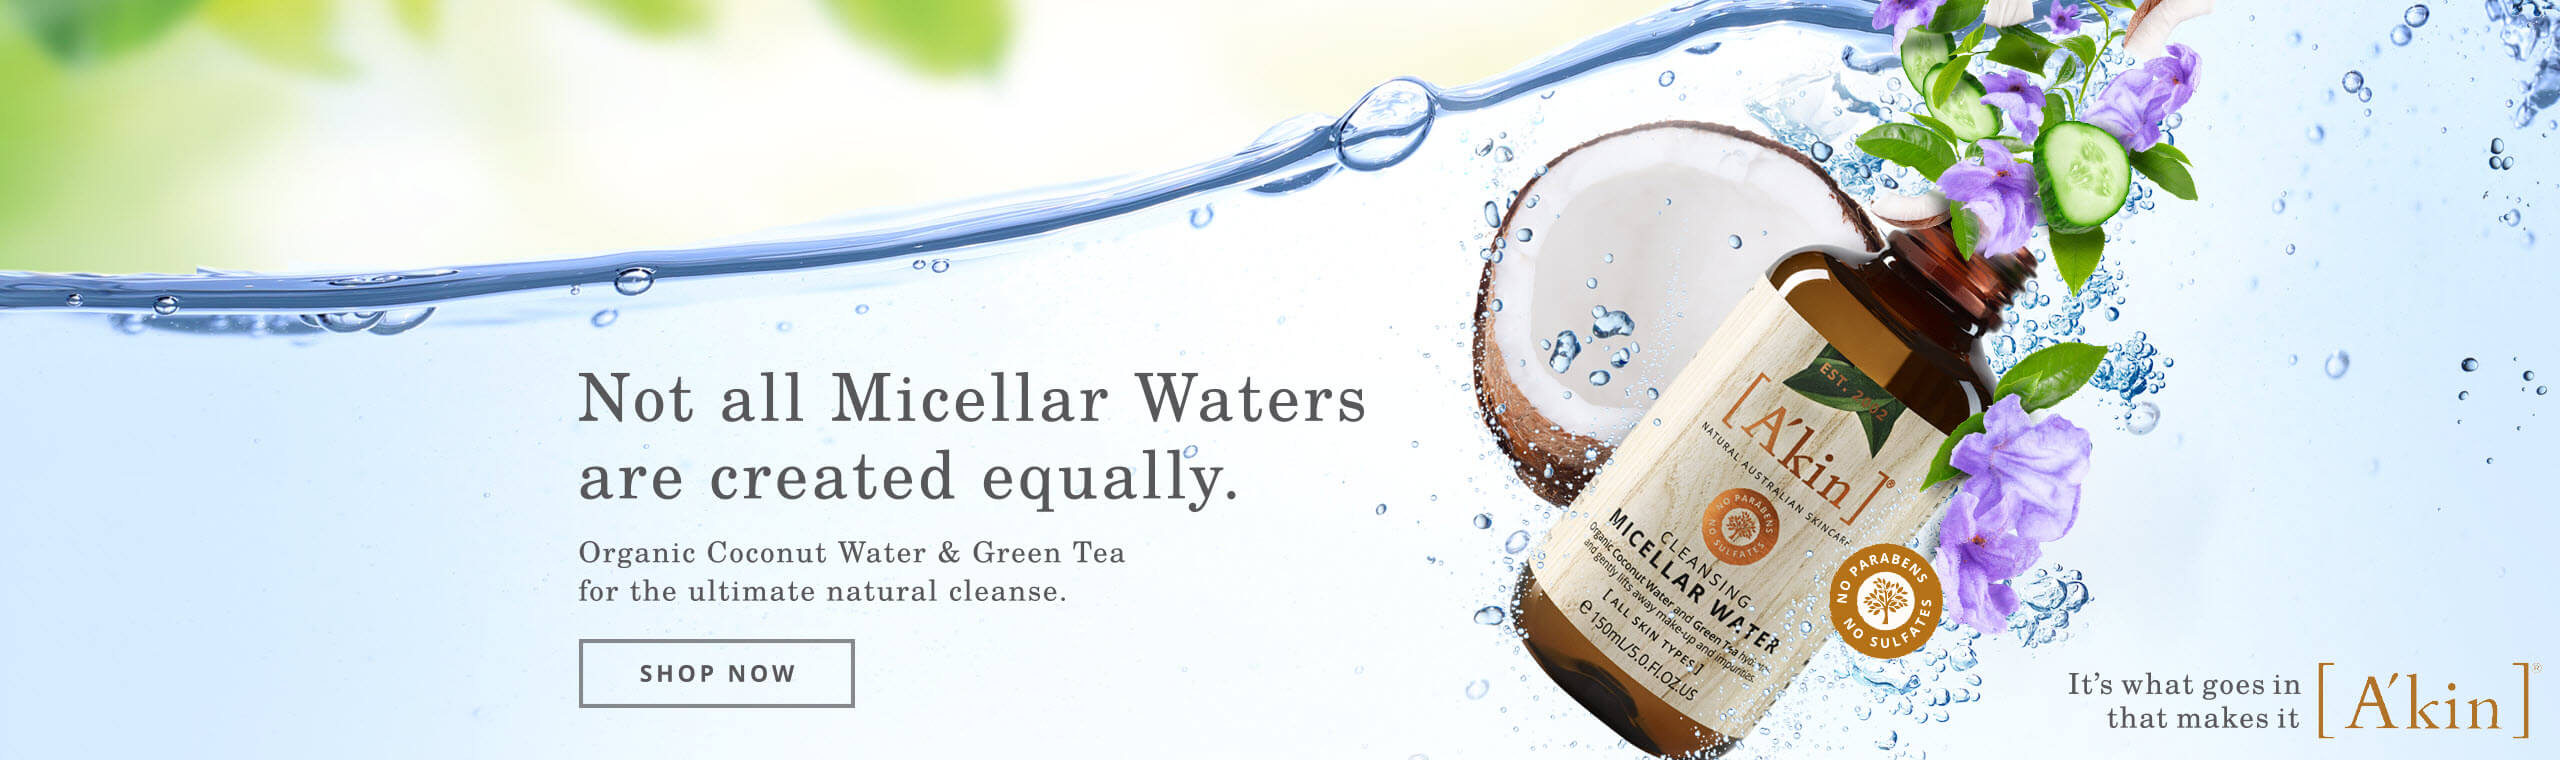 Not all Micellar Waters are created equally. Click to discover the A'kin Organic Coconut Water & Green Tea Micellar Water for the ultimate natural cleanse.